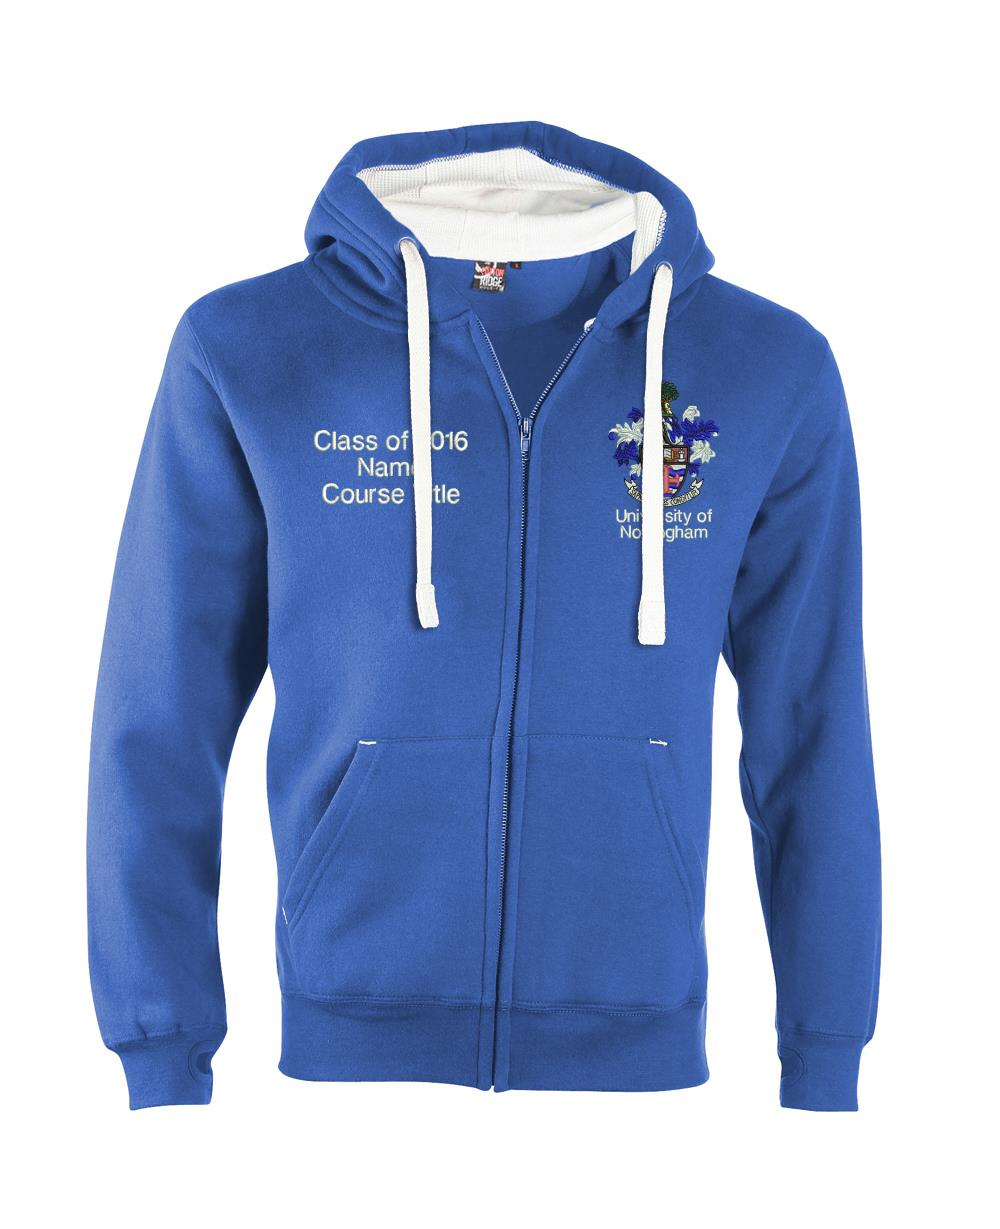 W81PF Embroidered-Ultra-Premium Graduation Zip Hoodie-Nottingham Ultra Soft Feel Hooded Top